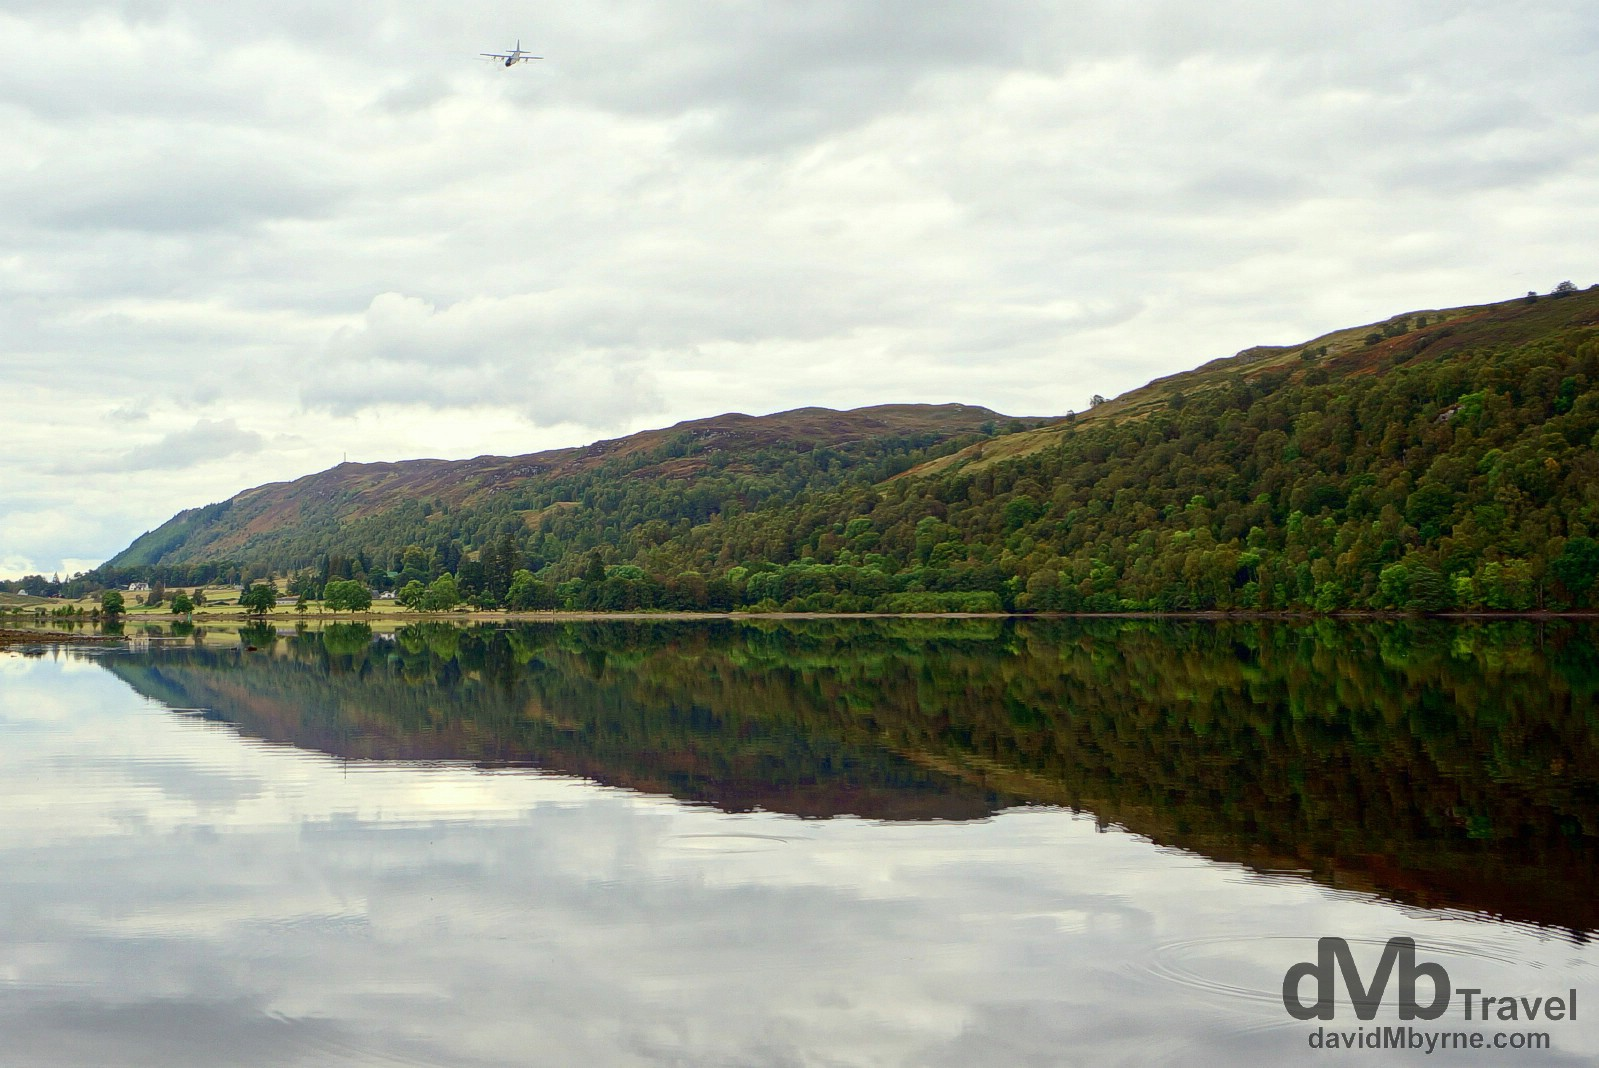 A military cargo plane fly-by over the waters of Loch Oich, Highlands, Scotland. September 16, 2014.